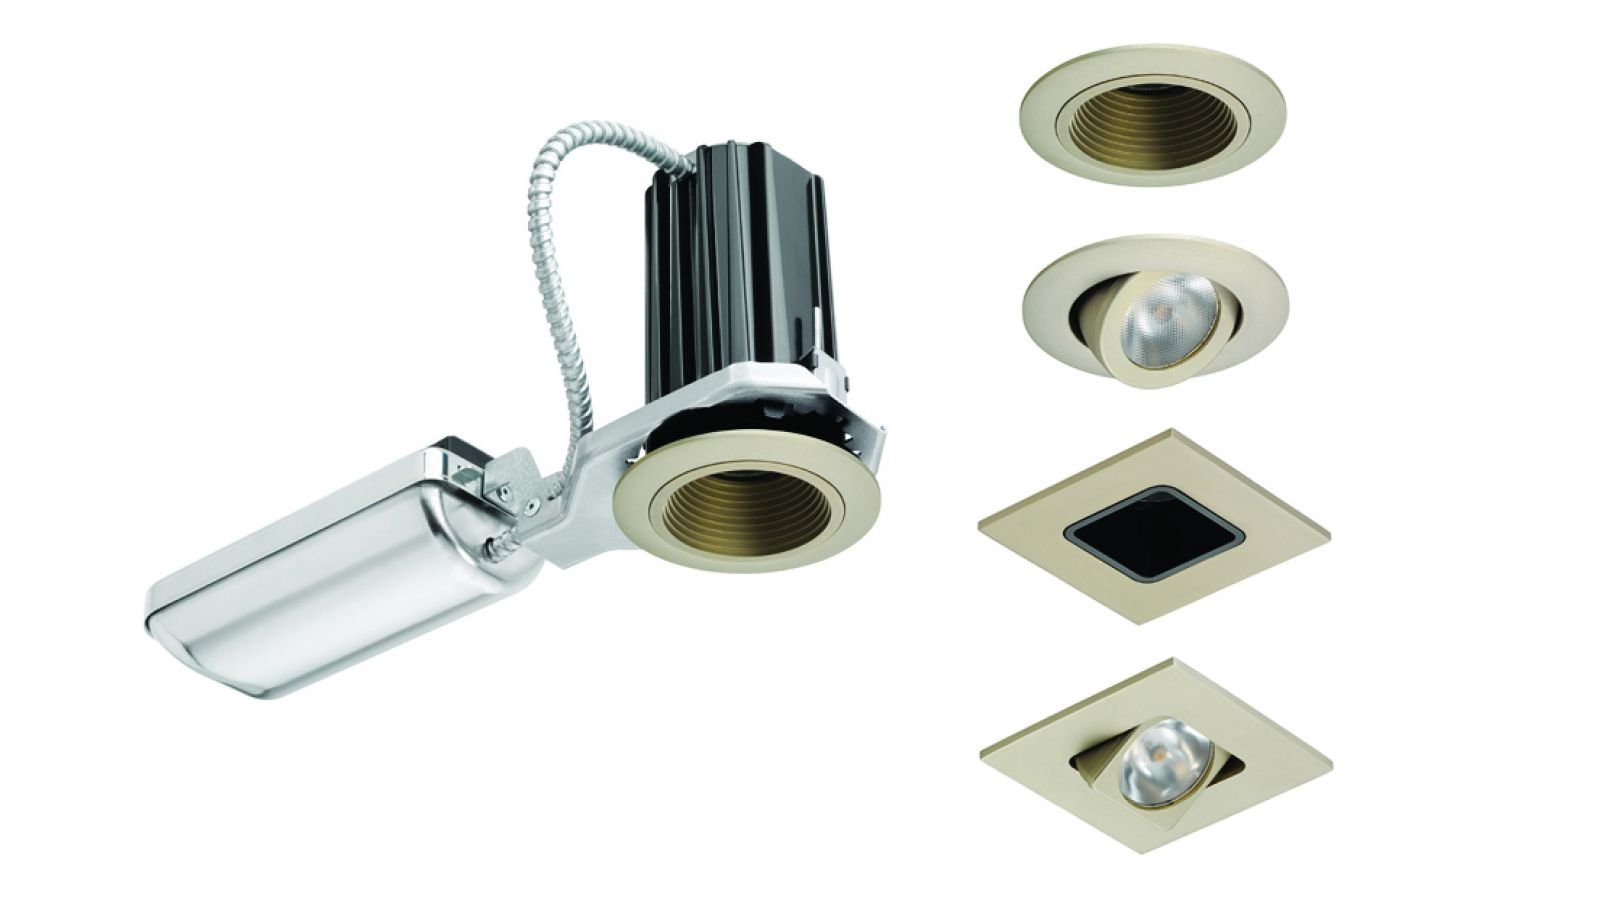 Juno 2-inch LED Downlights and Adjustables